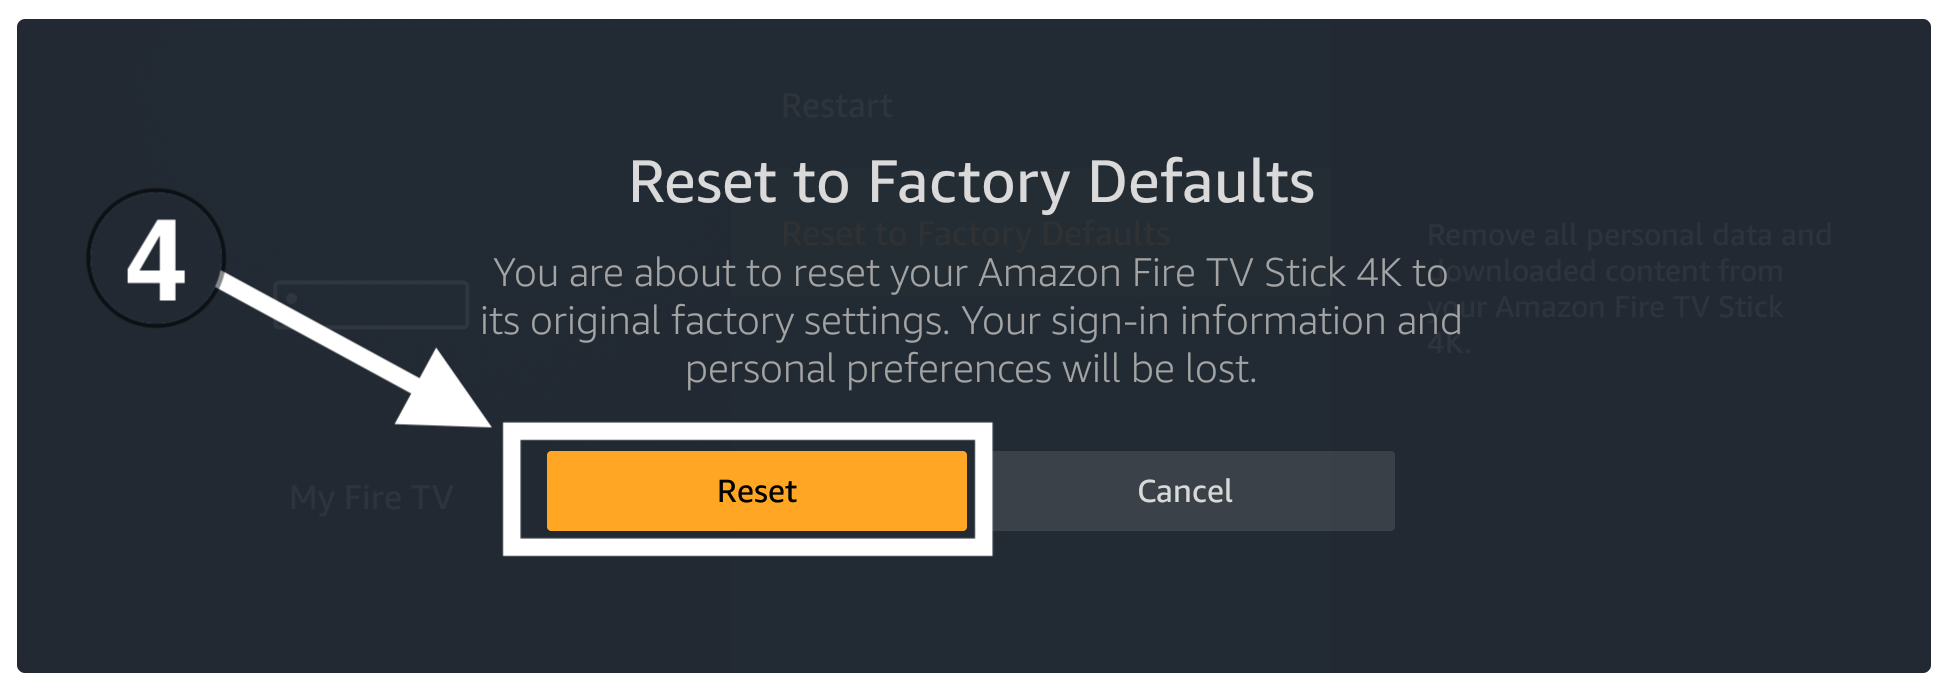 Amazon-Reset-Firestick-to-Factory-Settings